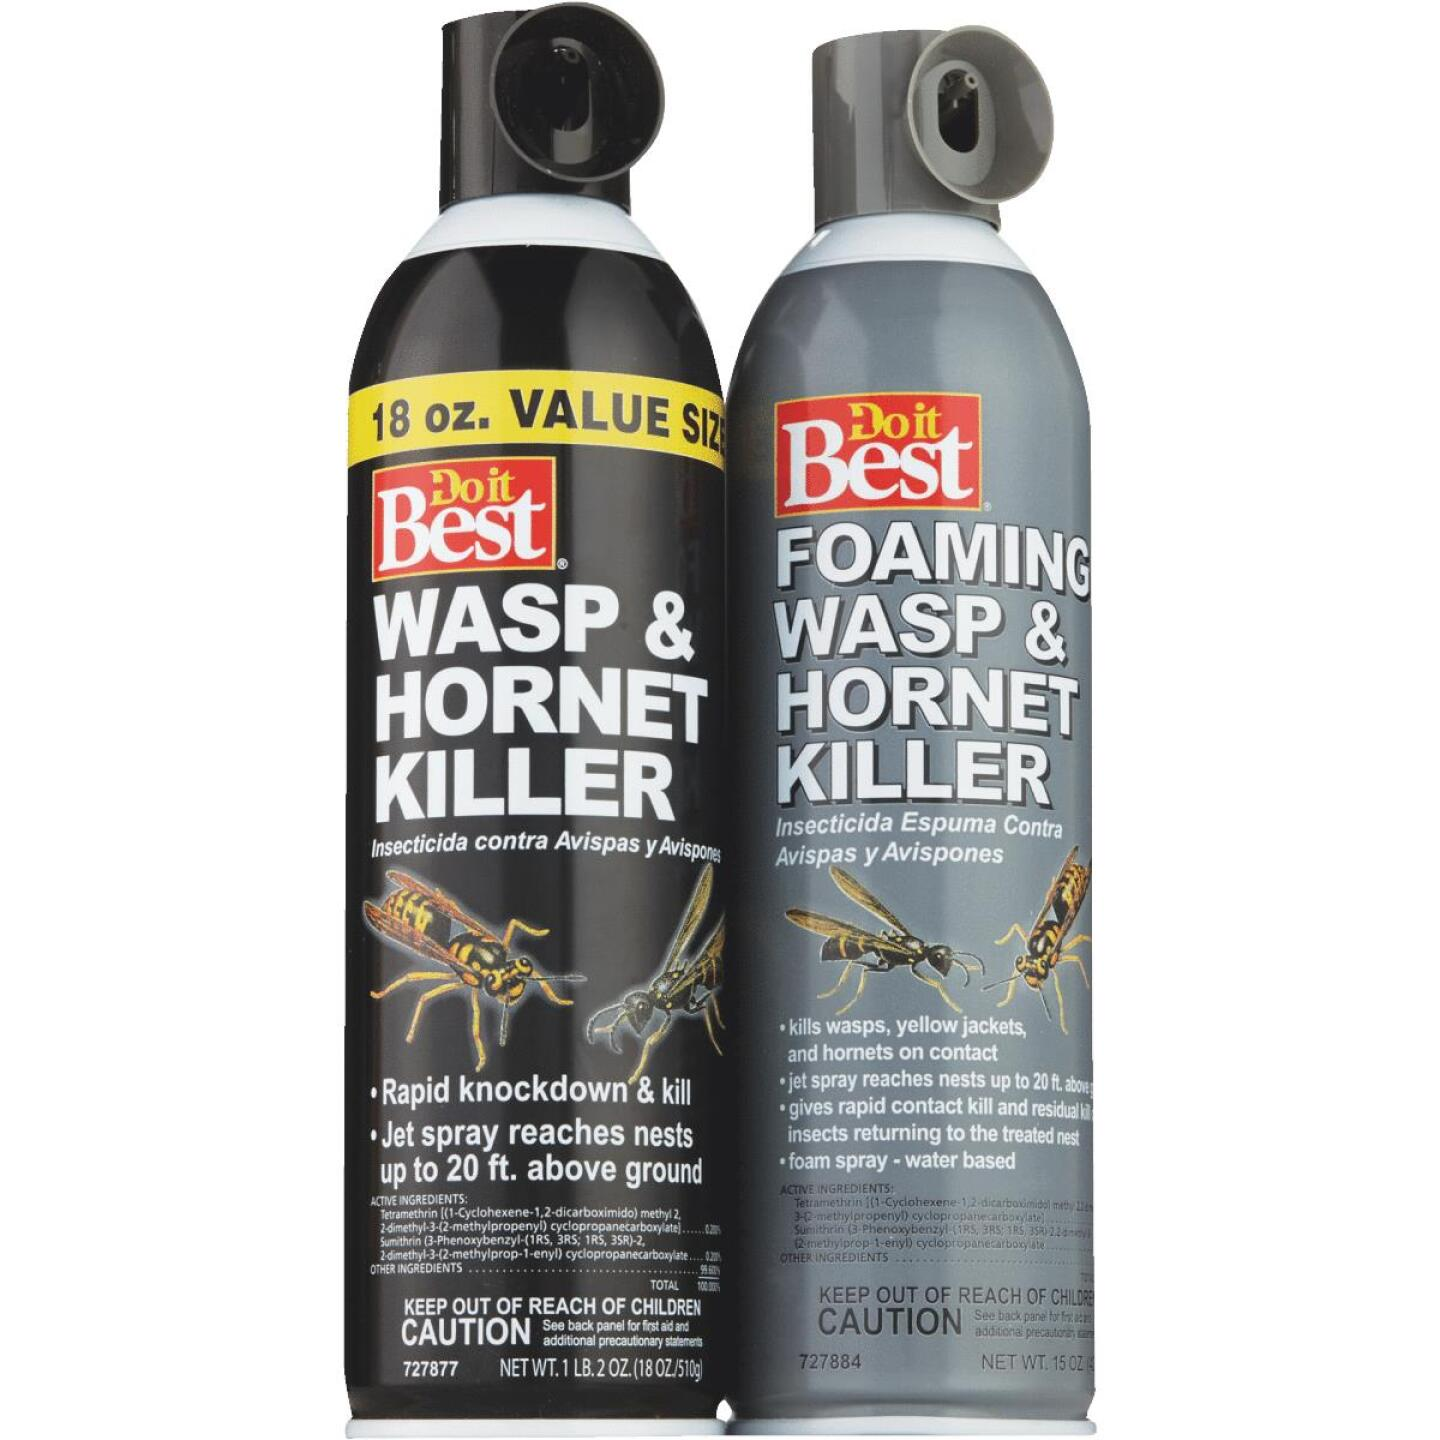 Do it Best 17.5 Oz. Liquid Aerosol Spray Wasp & Hornet Killer Image 2